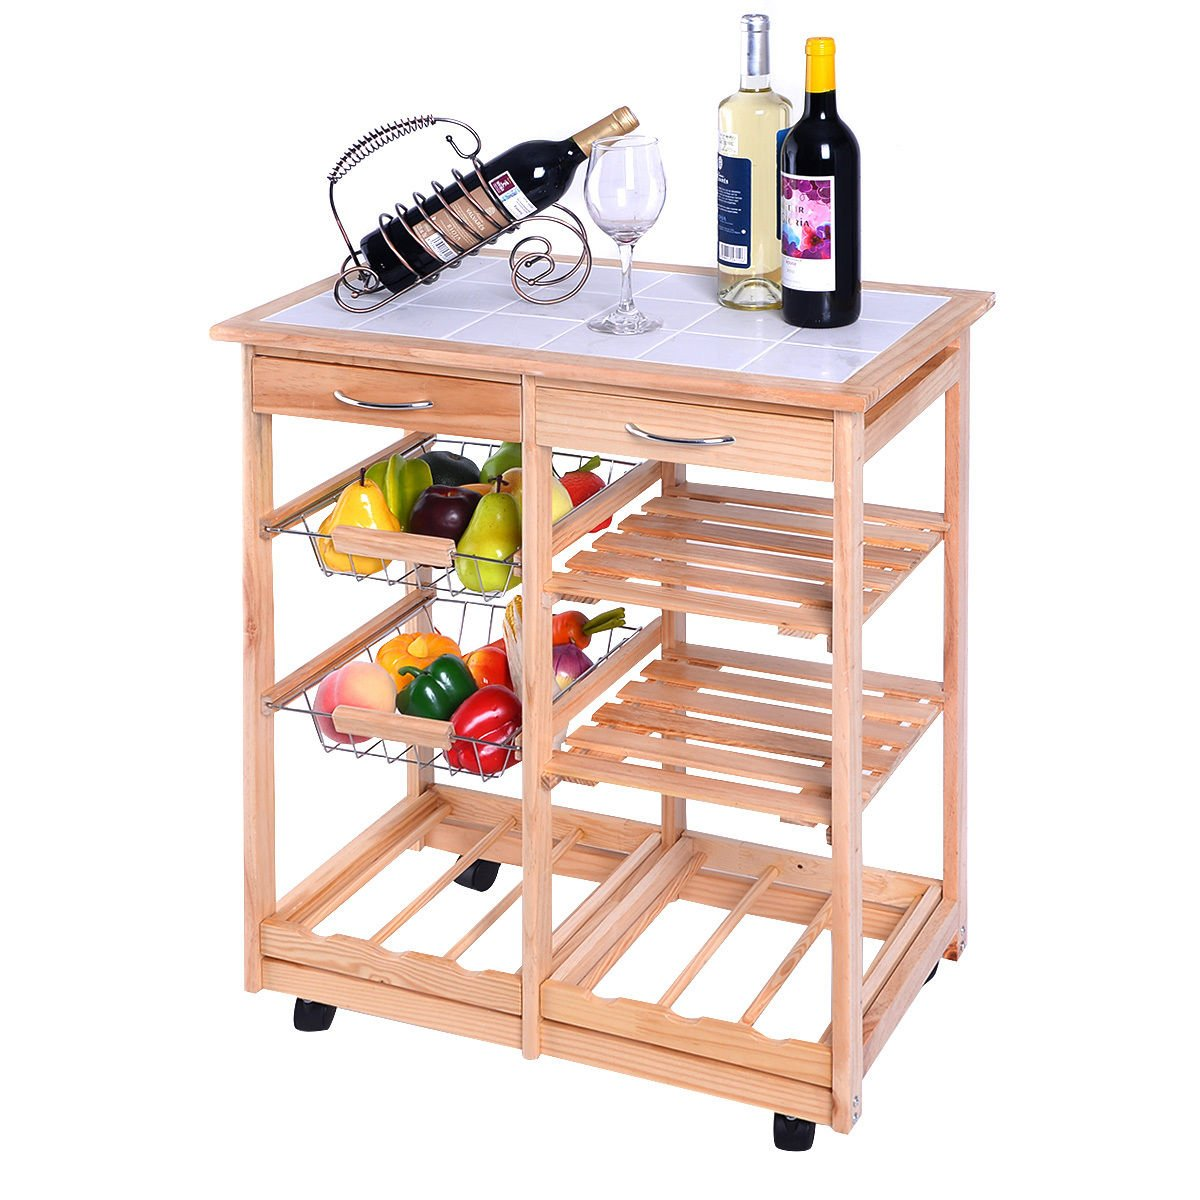 Rolling Wood Kitchen Trolley Cart Dining Storage Drawers Stand Durable